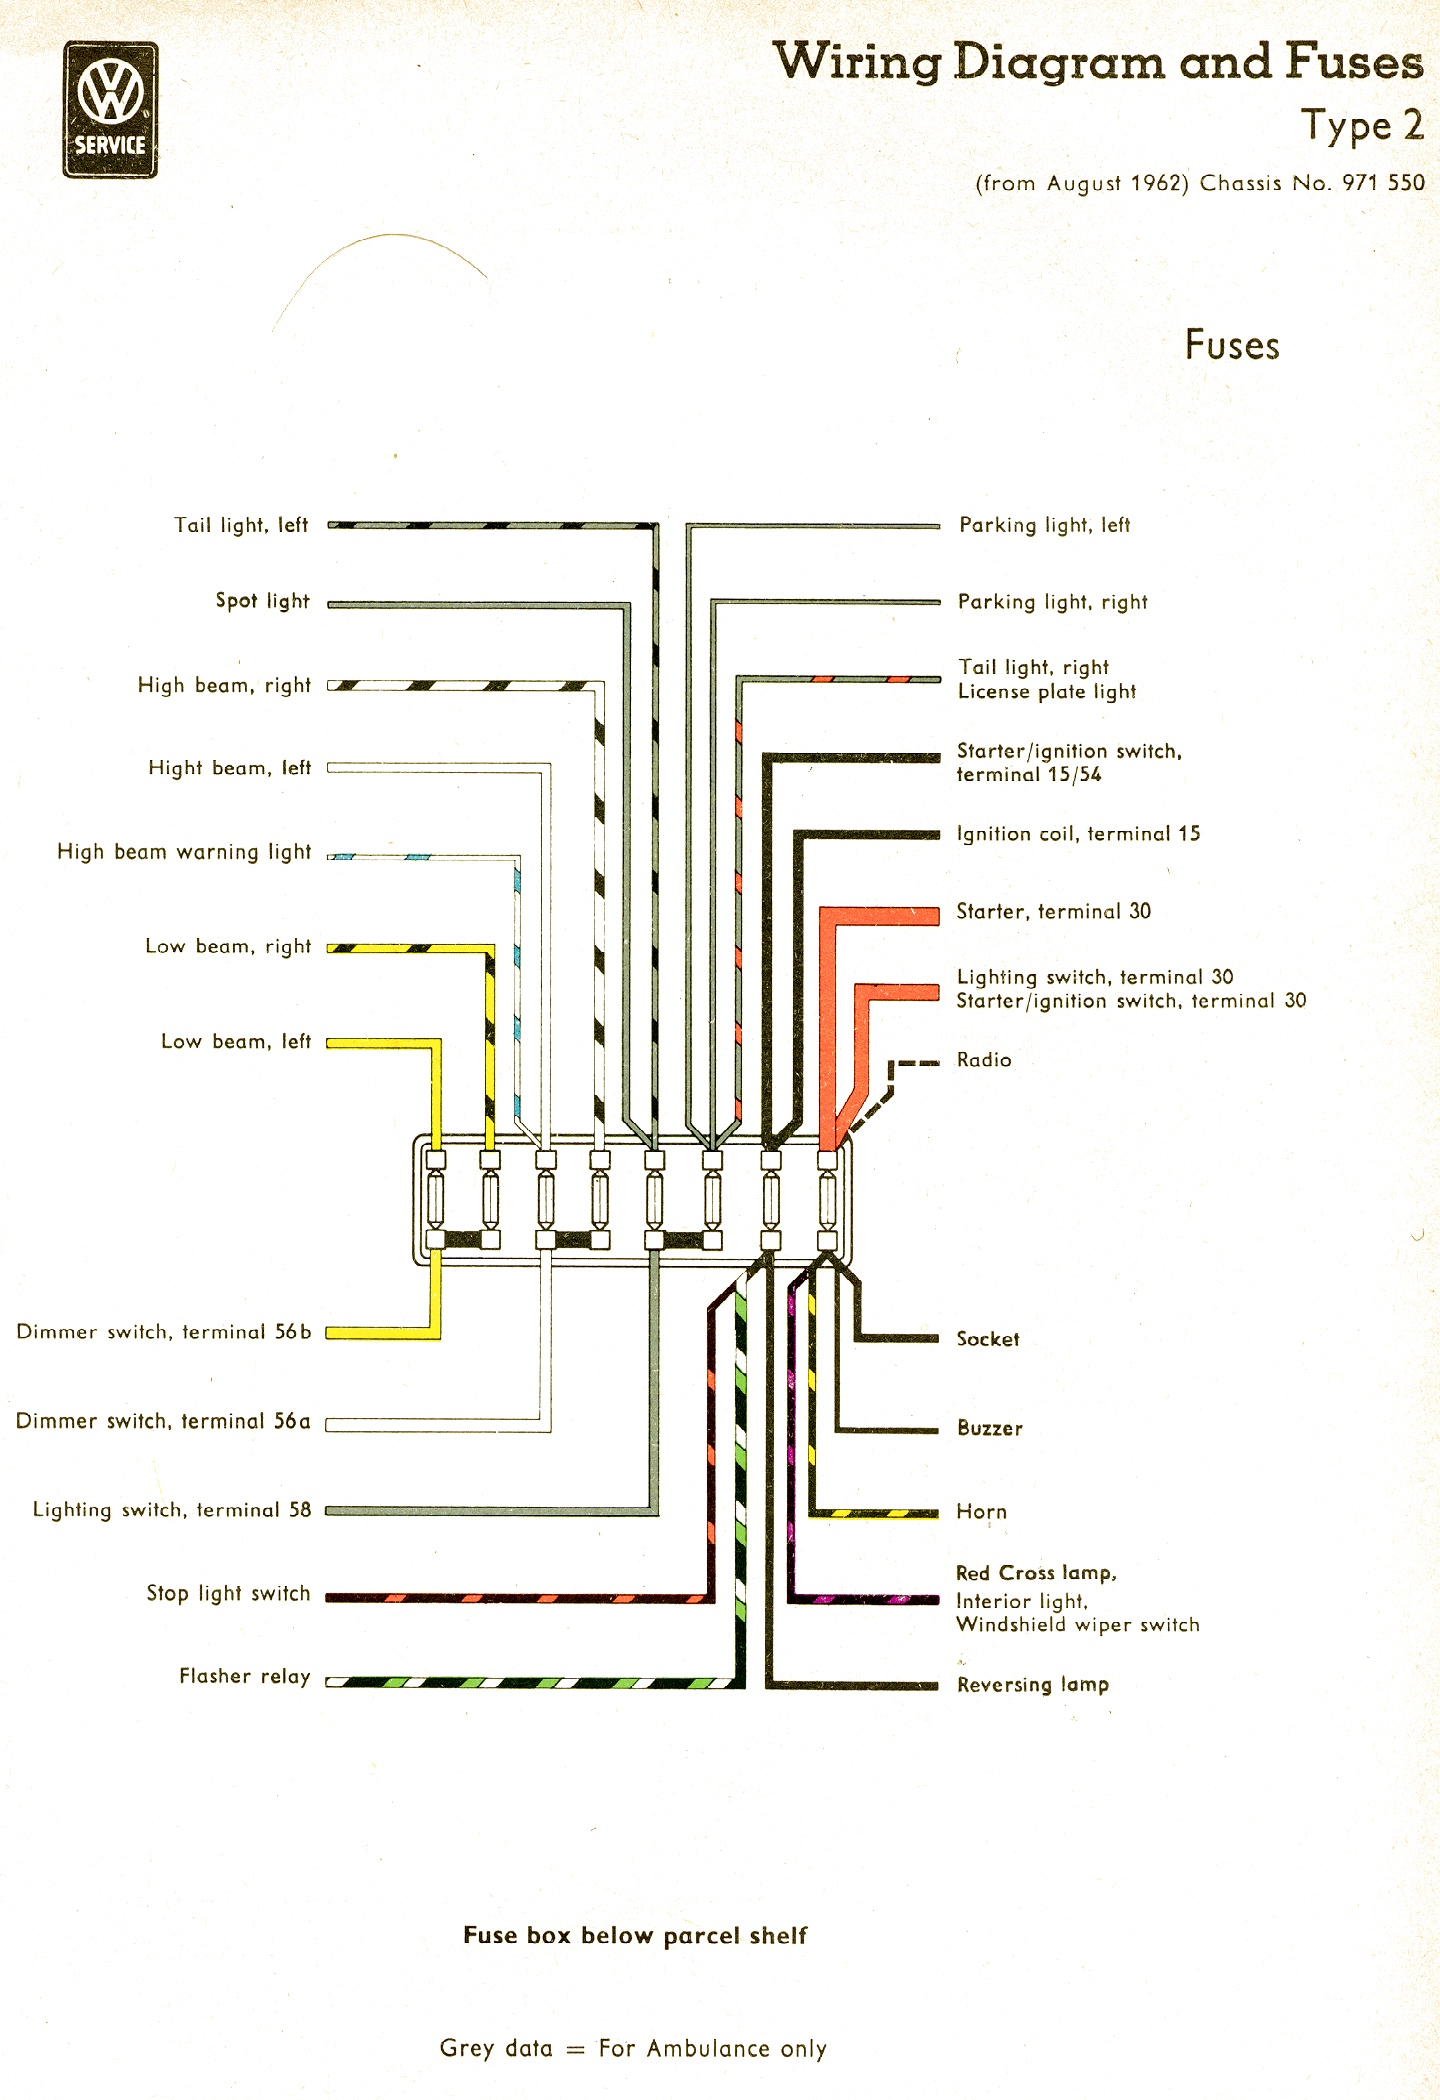 bus 62 fuse vintagebus com vw bus (and other) wiring diagrams 1971 vw bus wiring diagram at nearapp.co